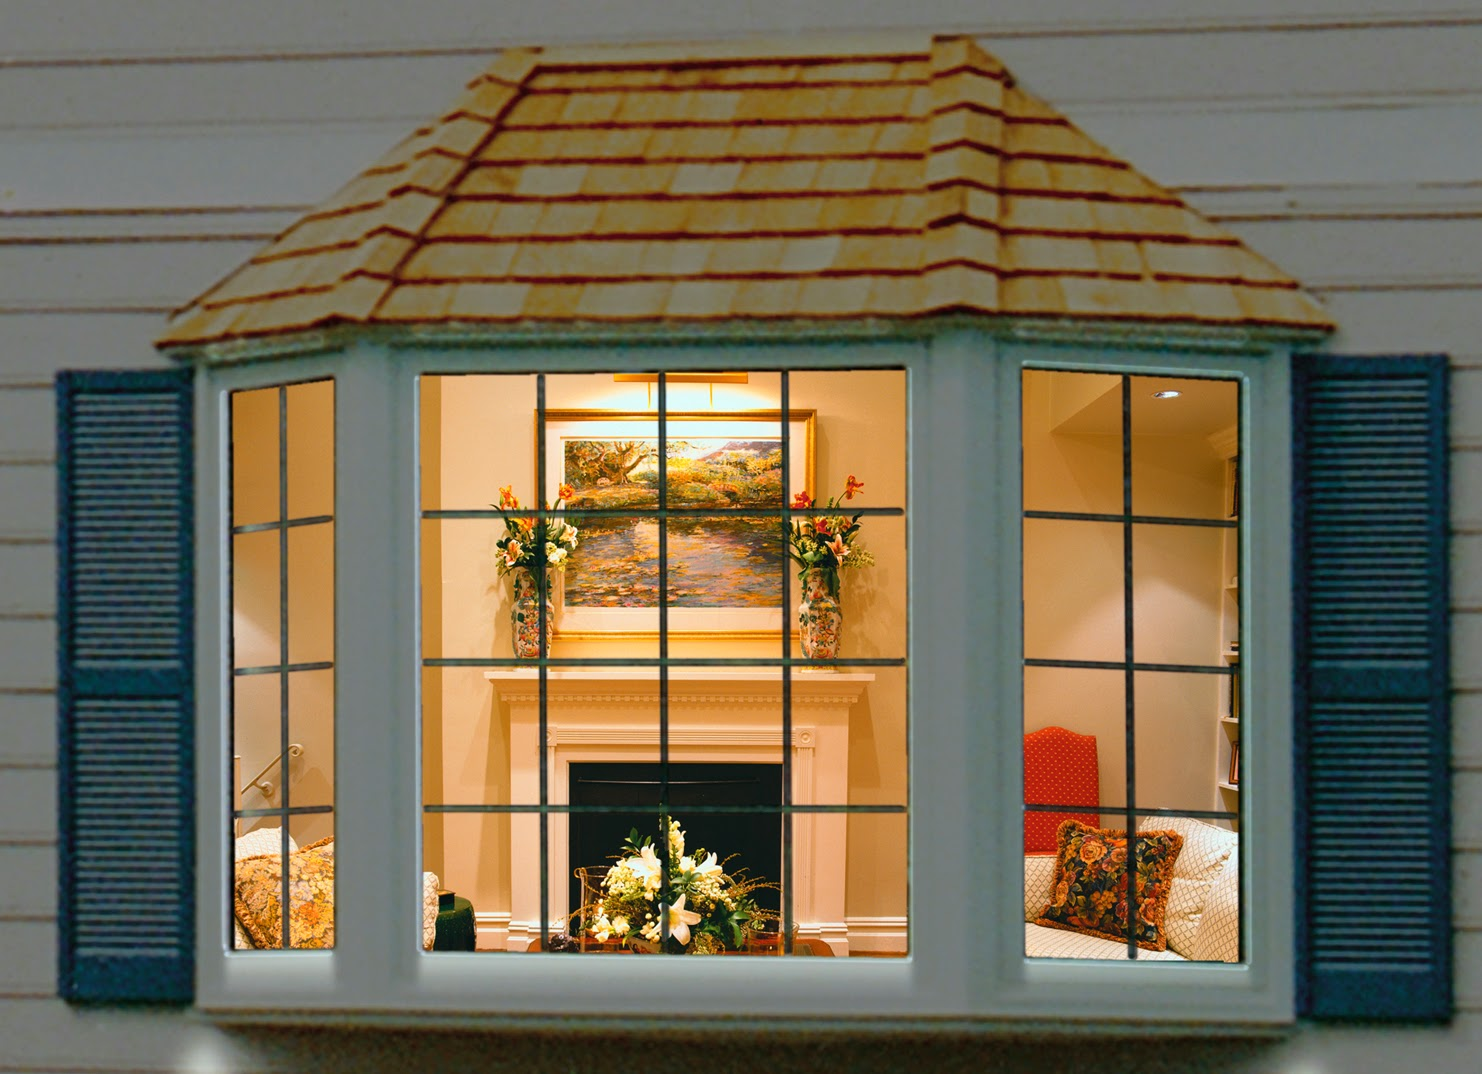 Foundation dezin decor august 2014 for Bay window designs